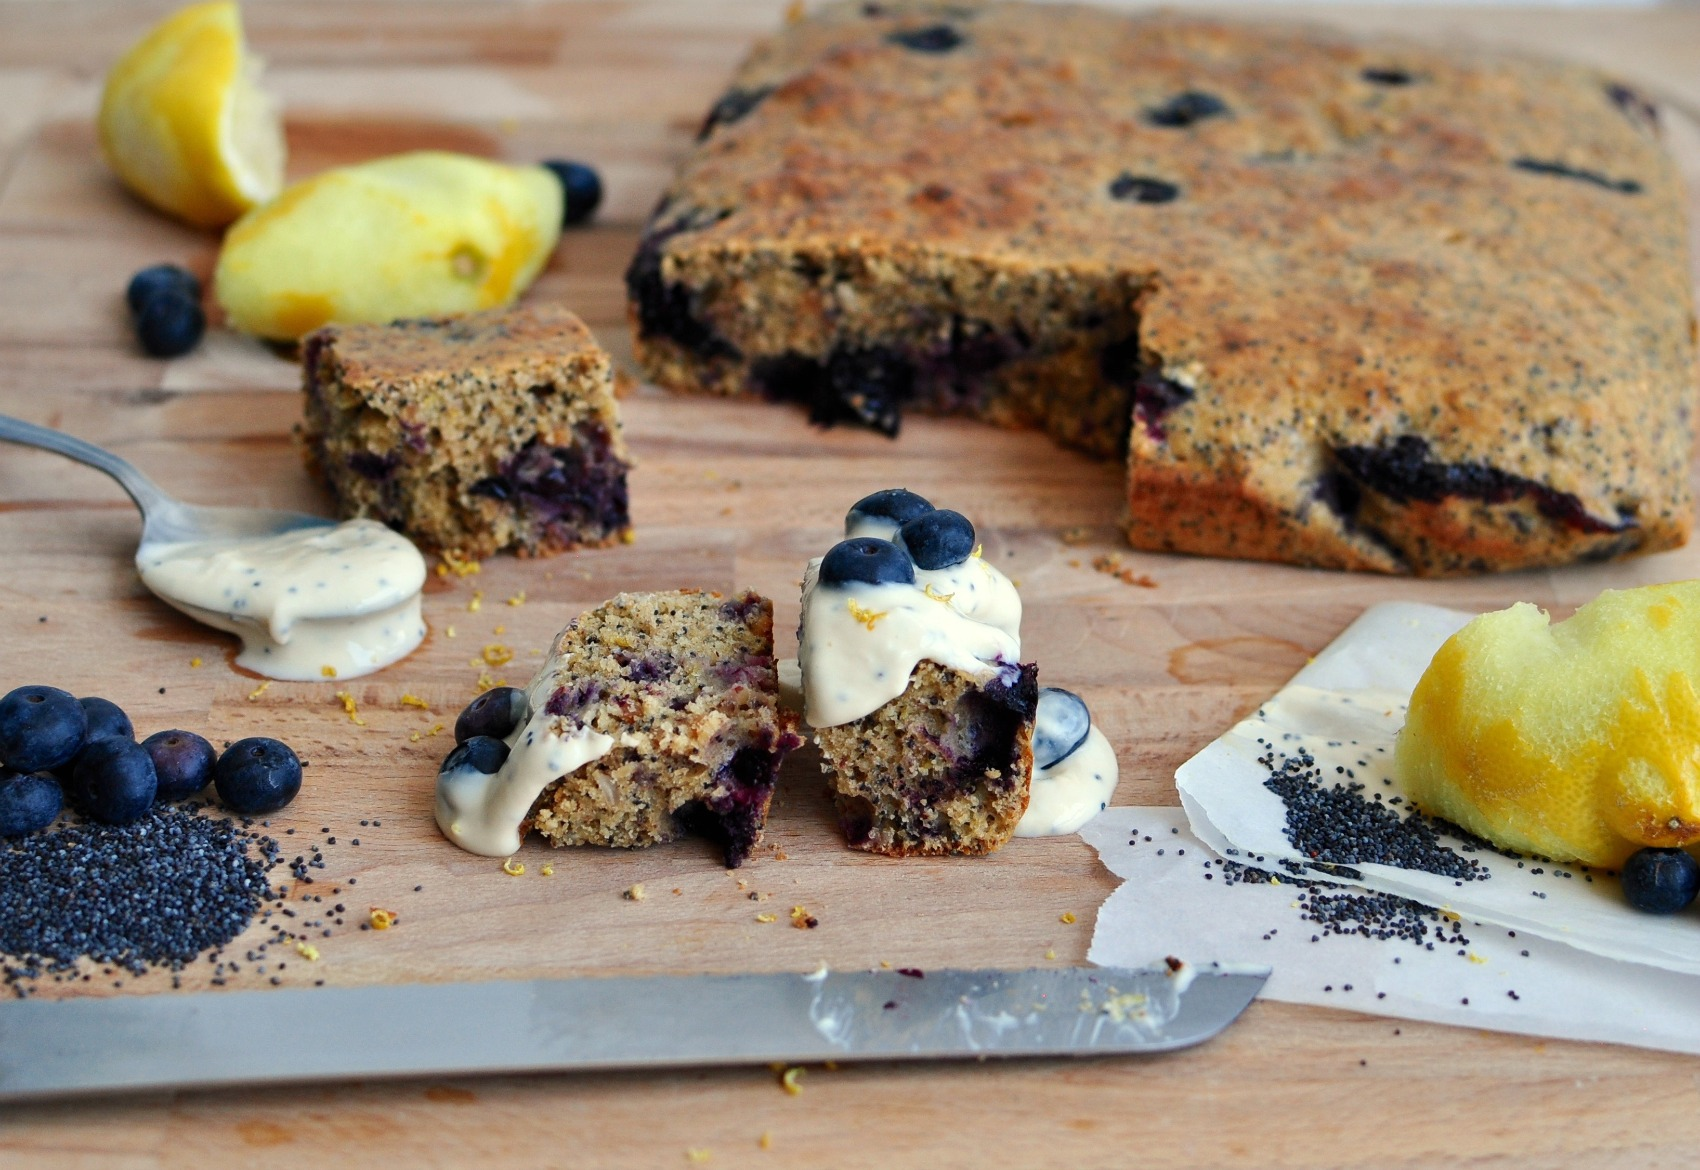 Blueberry and Lemon Cake Recipe